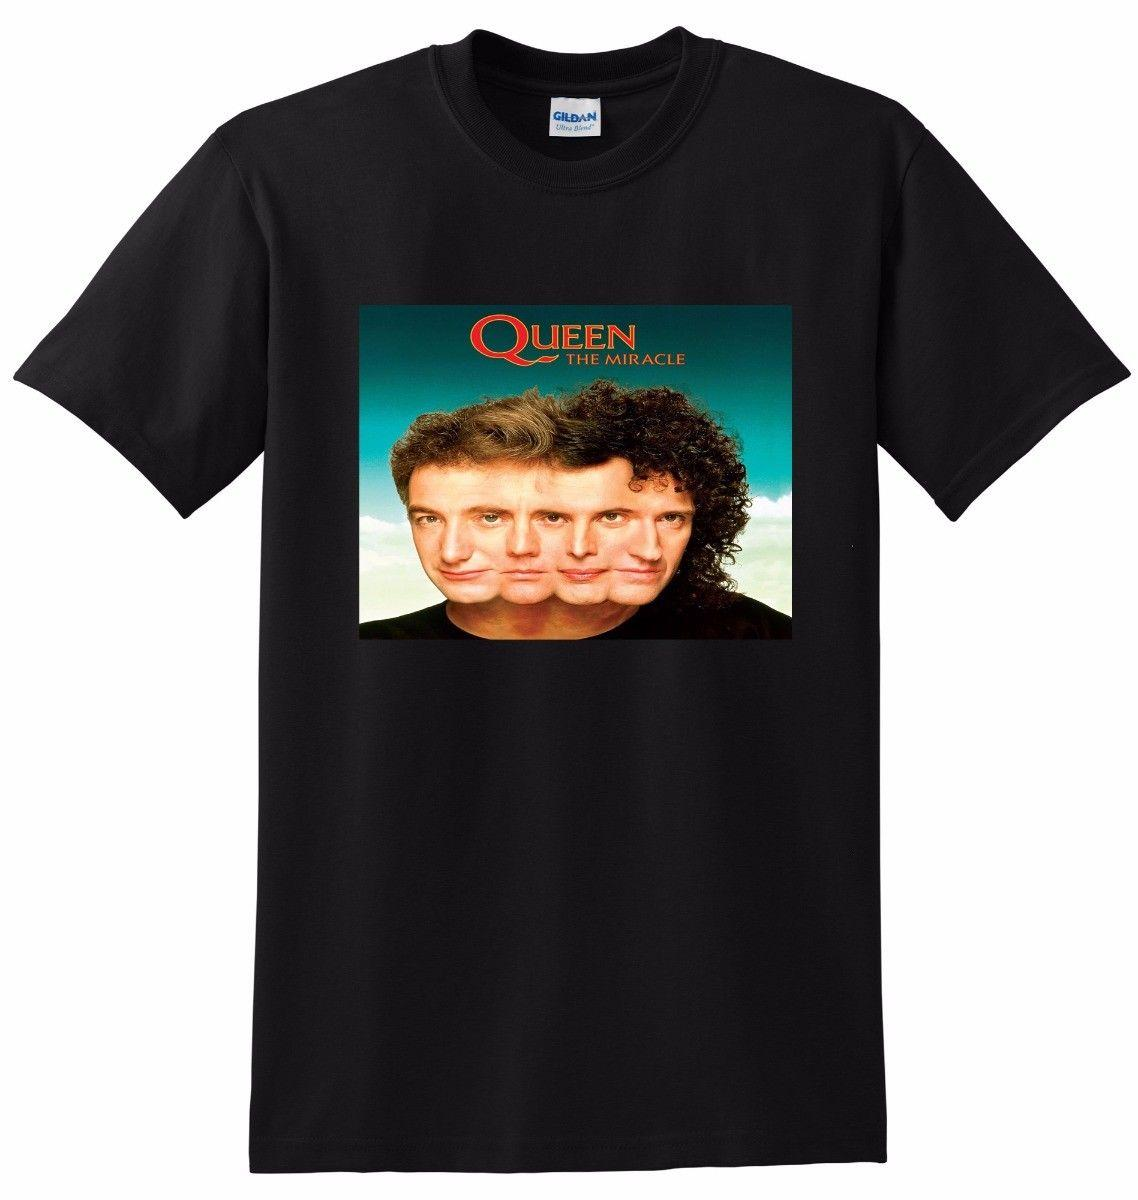 914be9c09736a QUEEN T SHIRT The Miracle SMALL MEDIUM LARGE Or XL Mens 2018 Fashion Brand T  Shirt O Neck 100%cotton T Shirt Tops Tee Custom Cool T Shirts T Shirts  Online ...